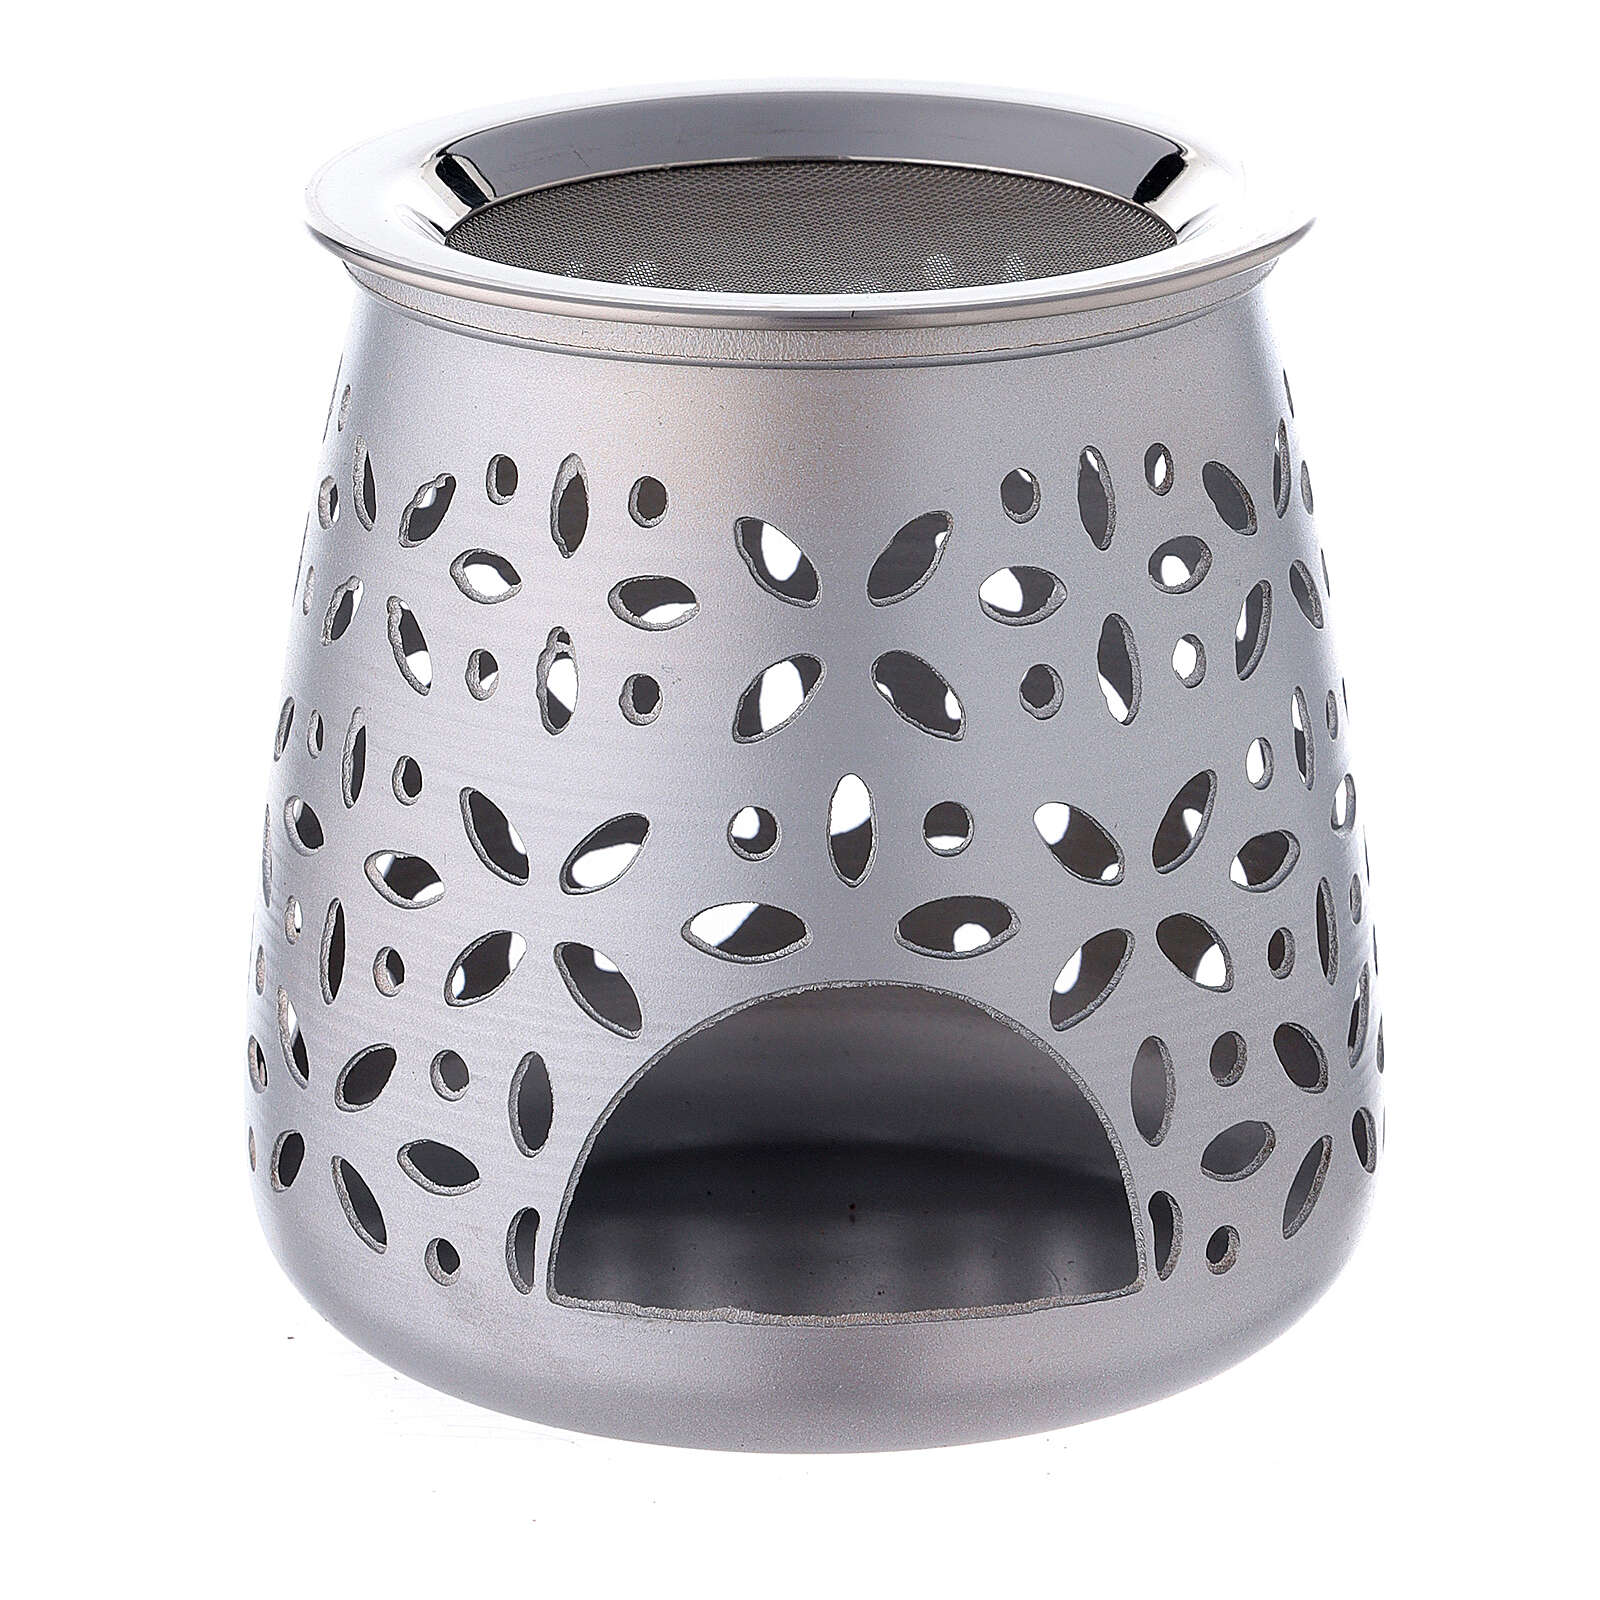 Cut-out aluminium incense burner with satin finish 4 1/4 in 3